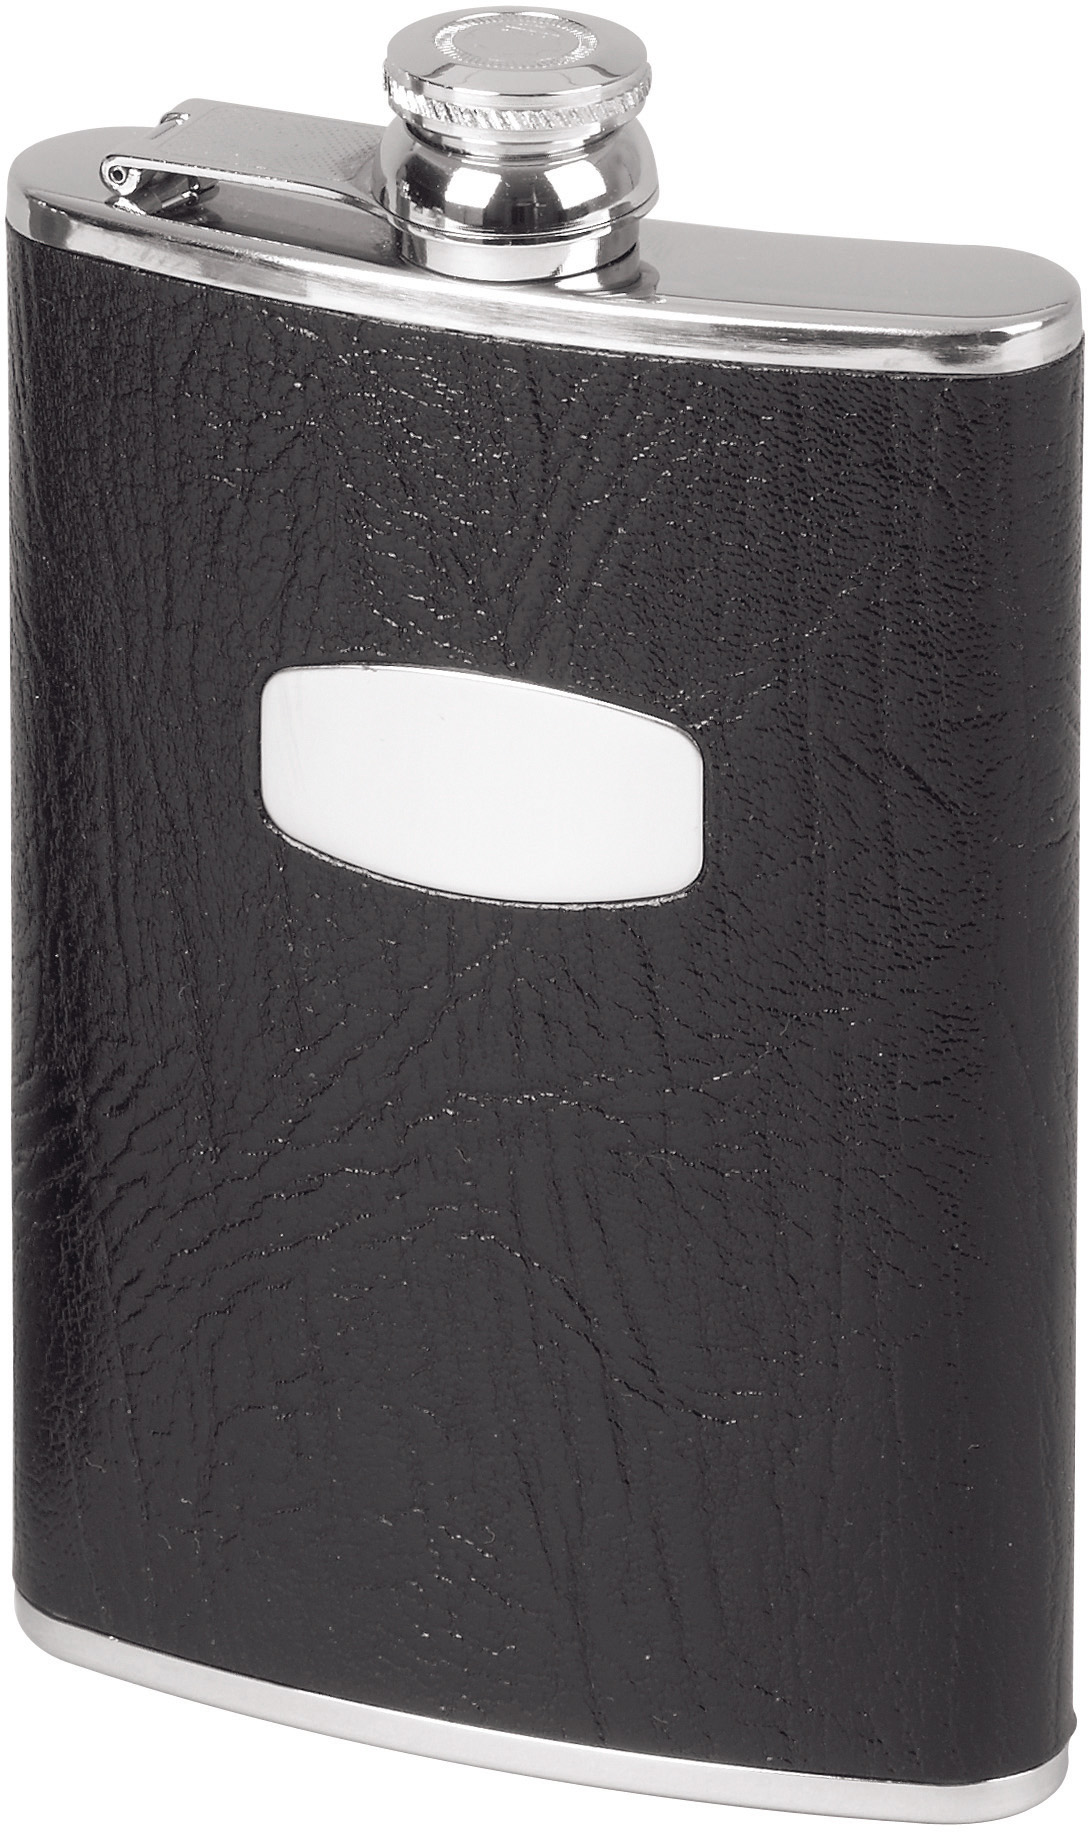 Stainless Steel Captive Top Flask 17cl